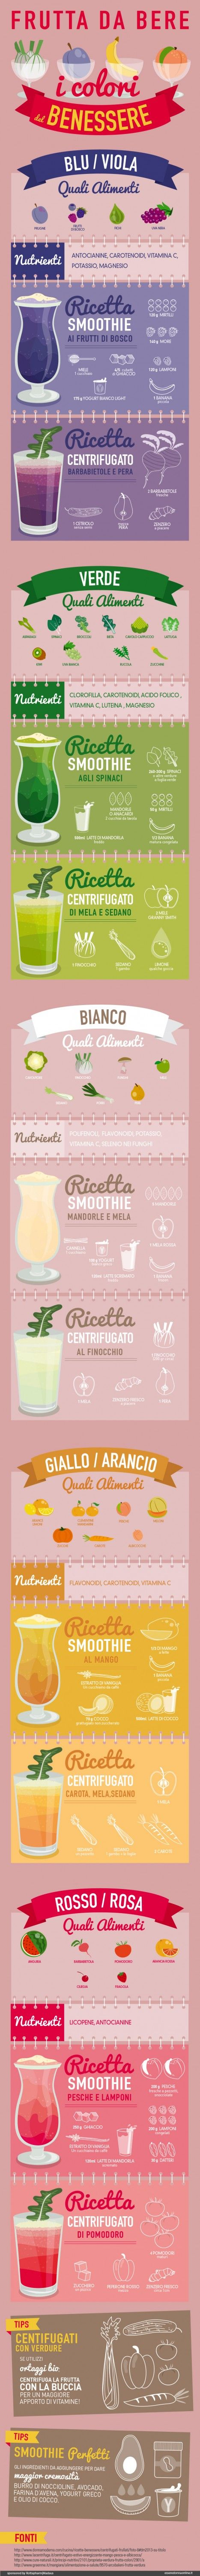 infographic: FRUTTA DA BERE -FRUIT DRINK for Esseredonnaonline.com by Kleland studio of Alice Kle Borghi